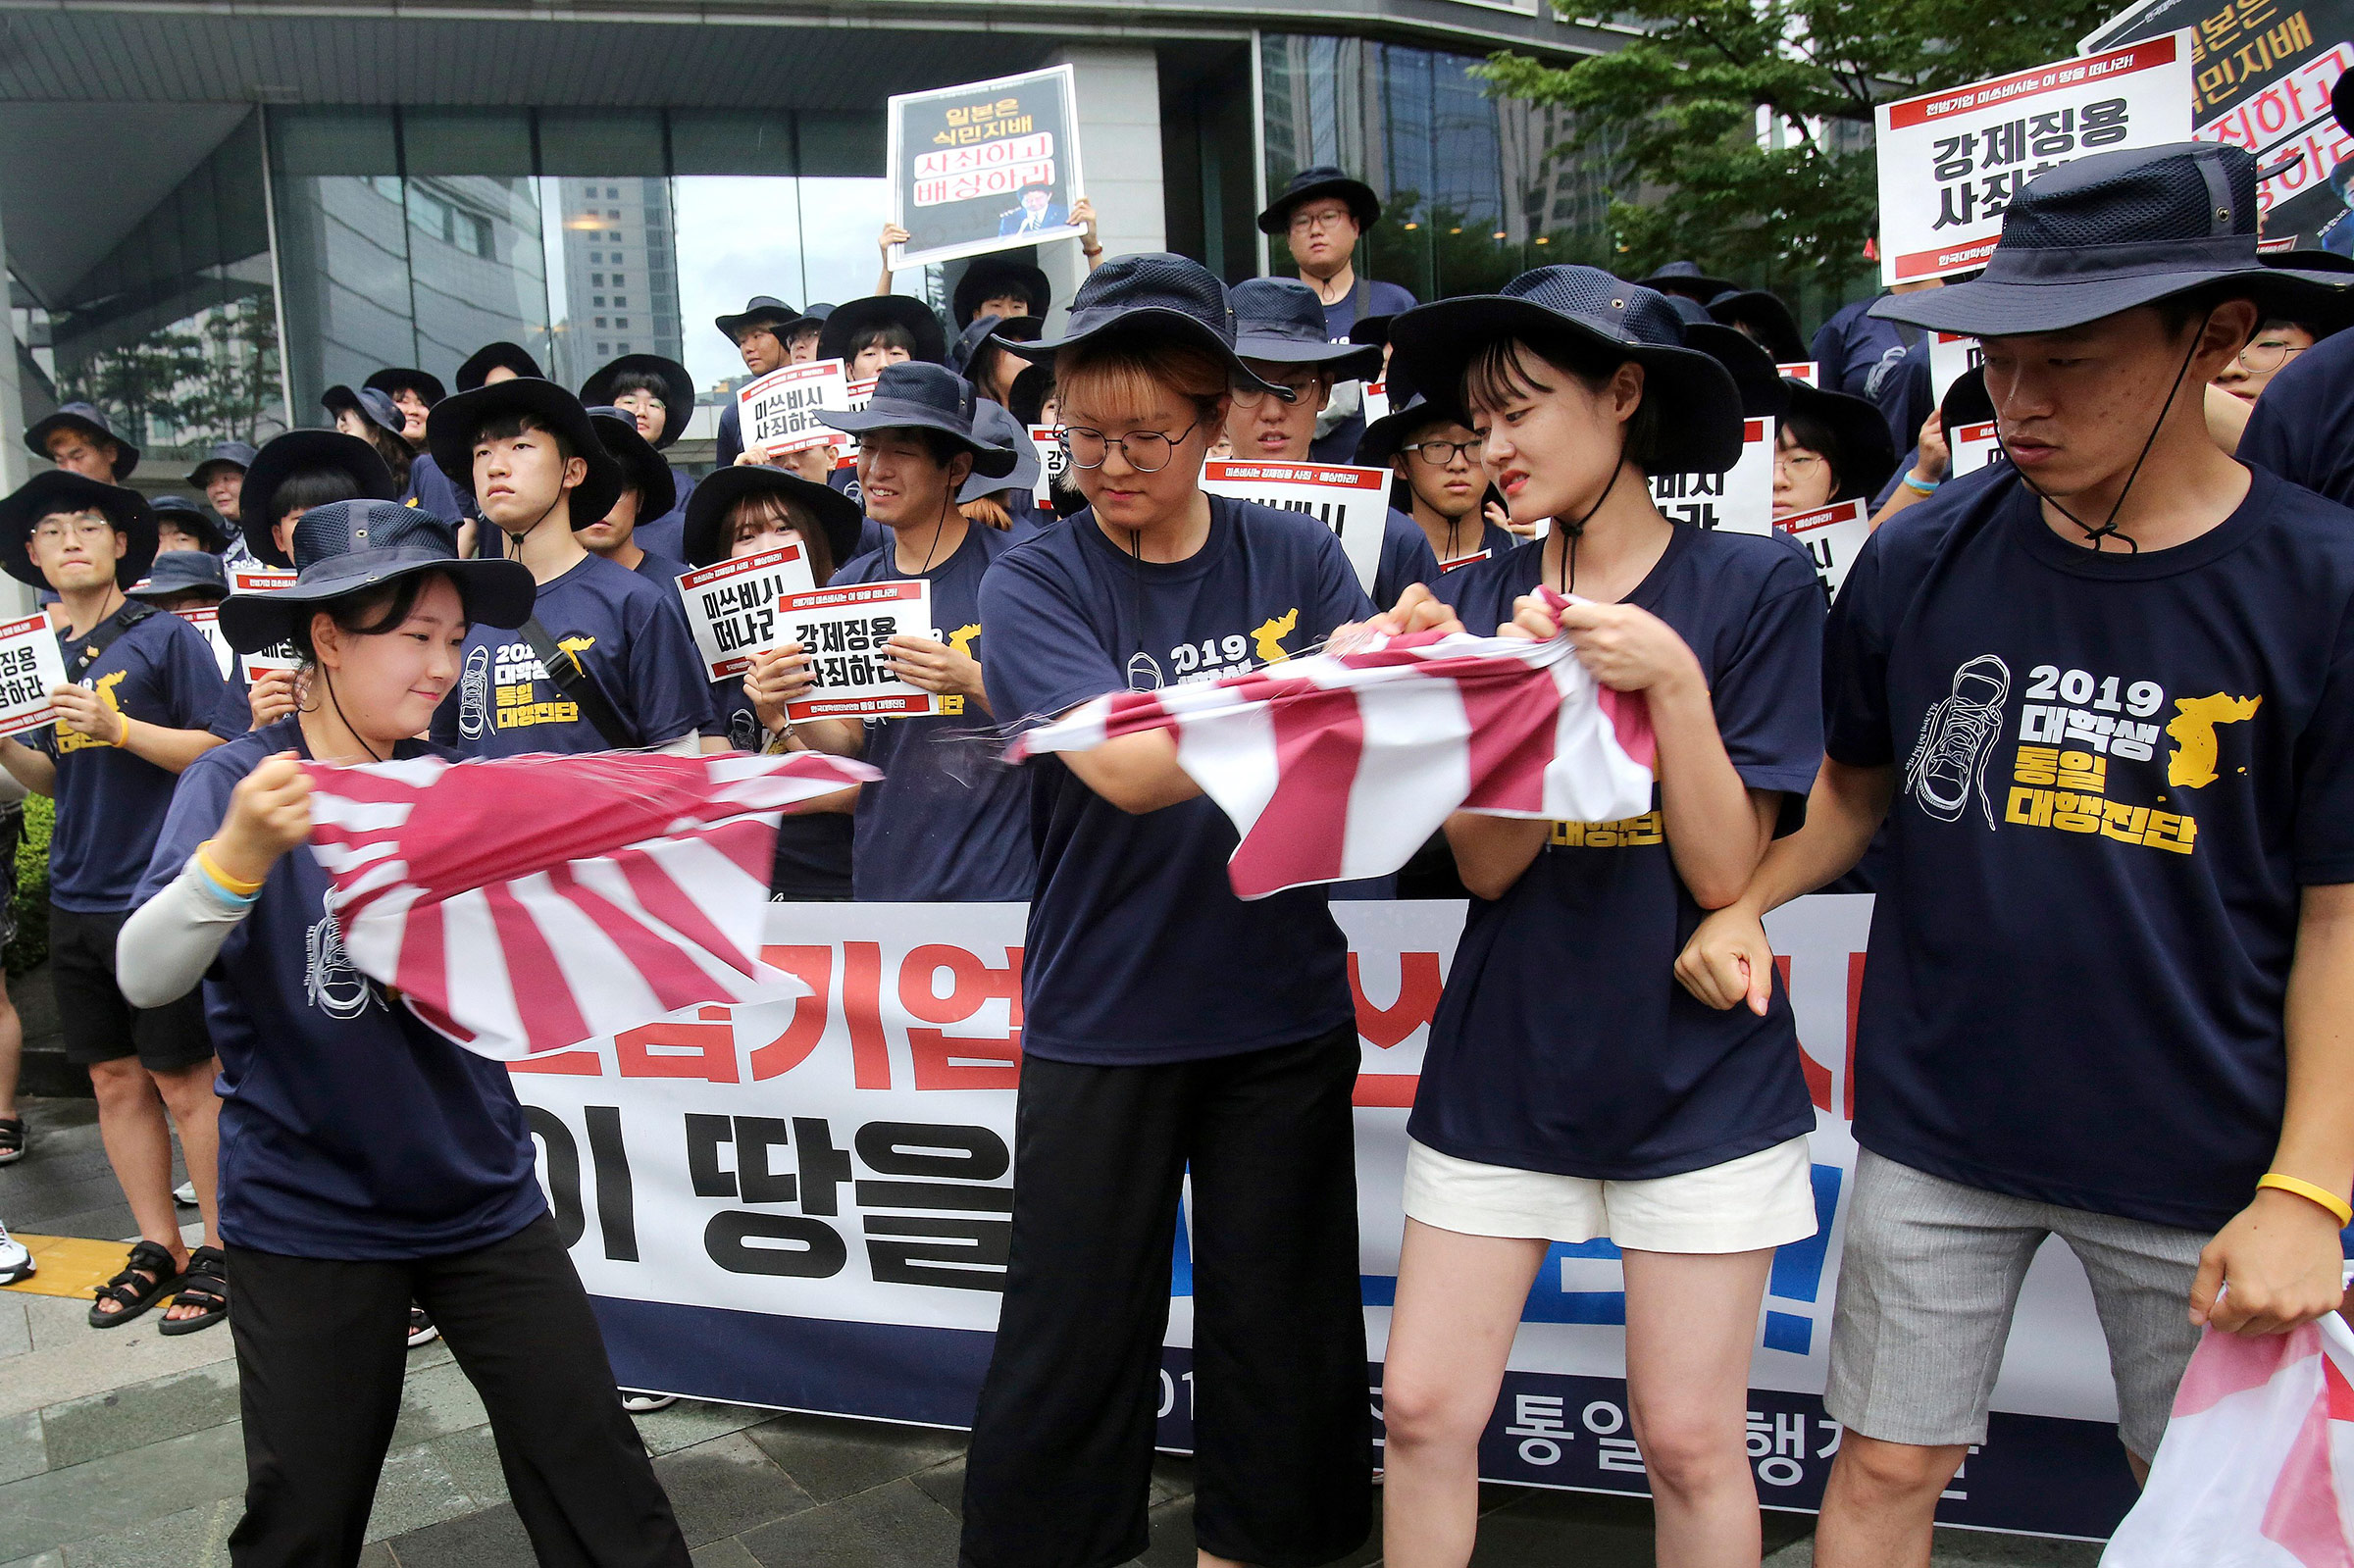 South Korean college students tear a banner showing an image of a Japanese rising sun flag during a rally to denounce Japan's new trade restrictions on South Korea in front of the office of Mitsubishi Corp. in Seoul, South Korea, on Aug. 7.